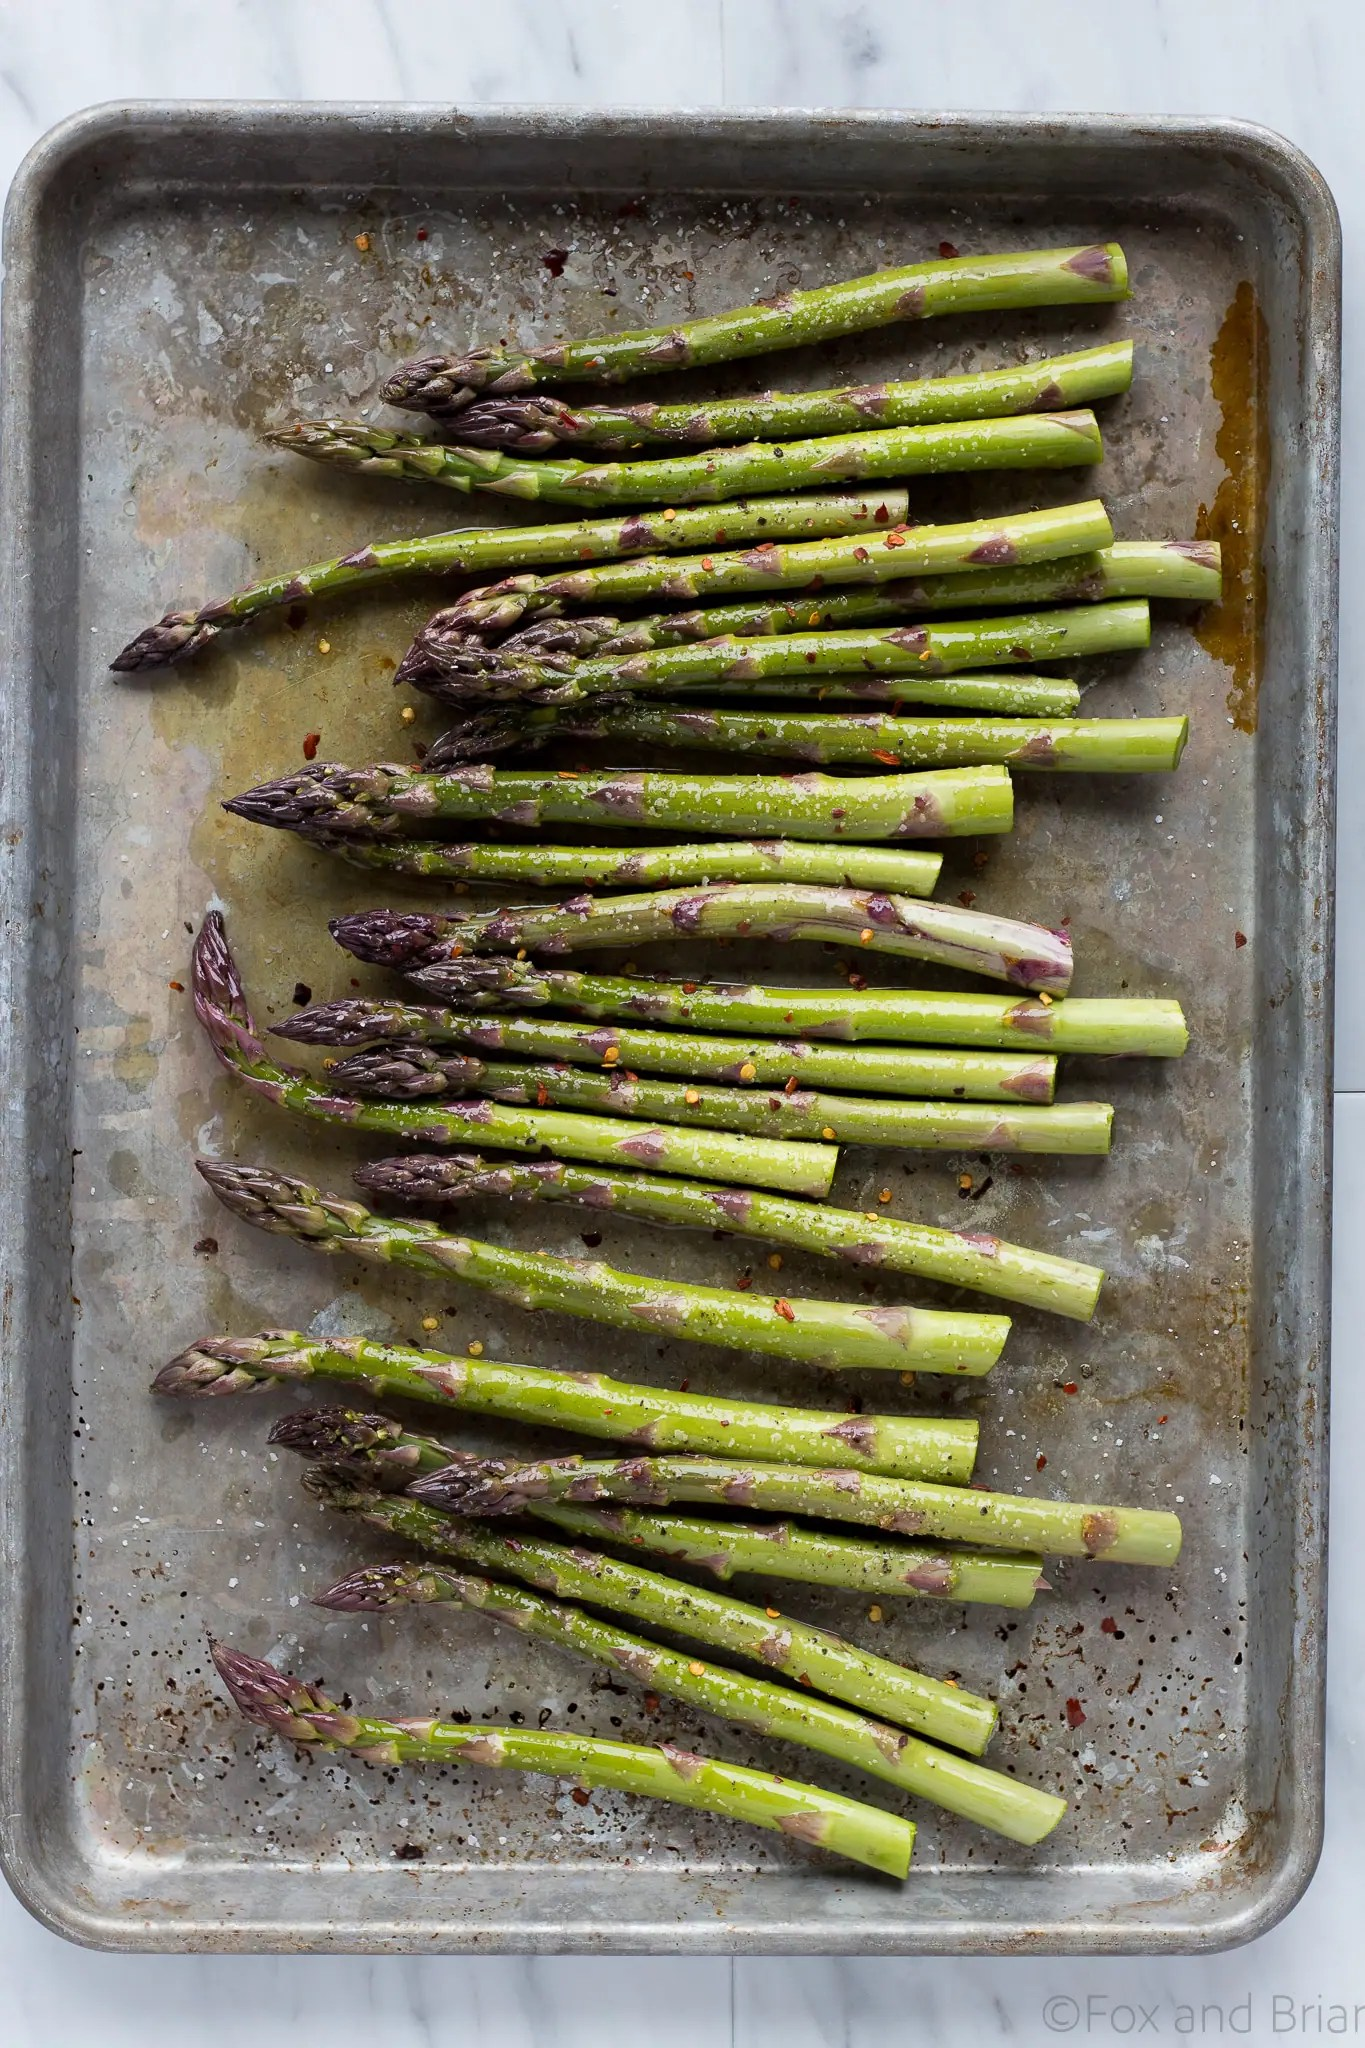 This Roasted Shrimp and Asparagus is a quick one sheet pan meal can be made in about 20 minutes and is tasty and healthy!